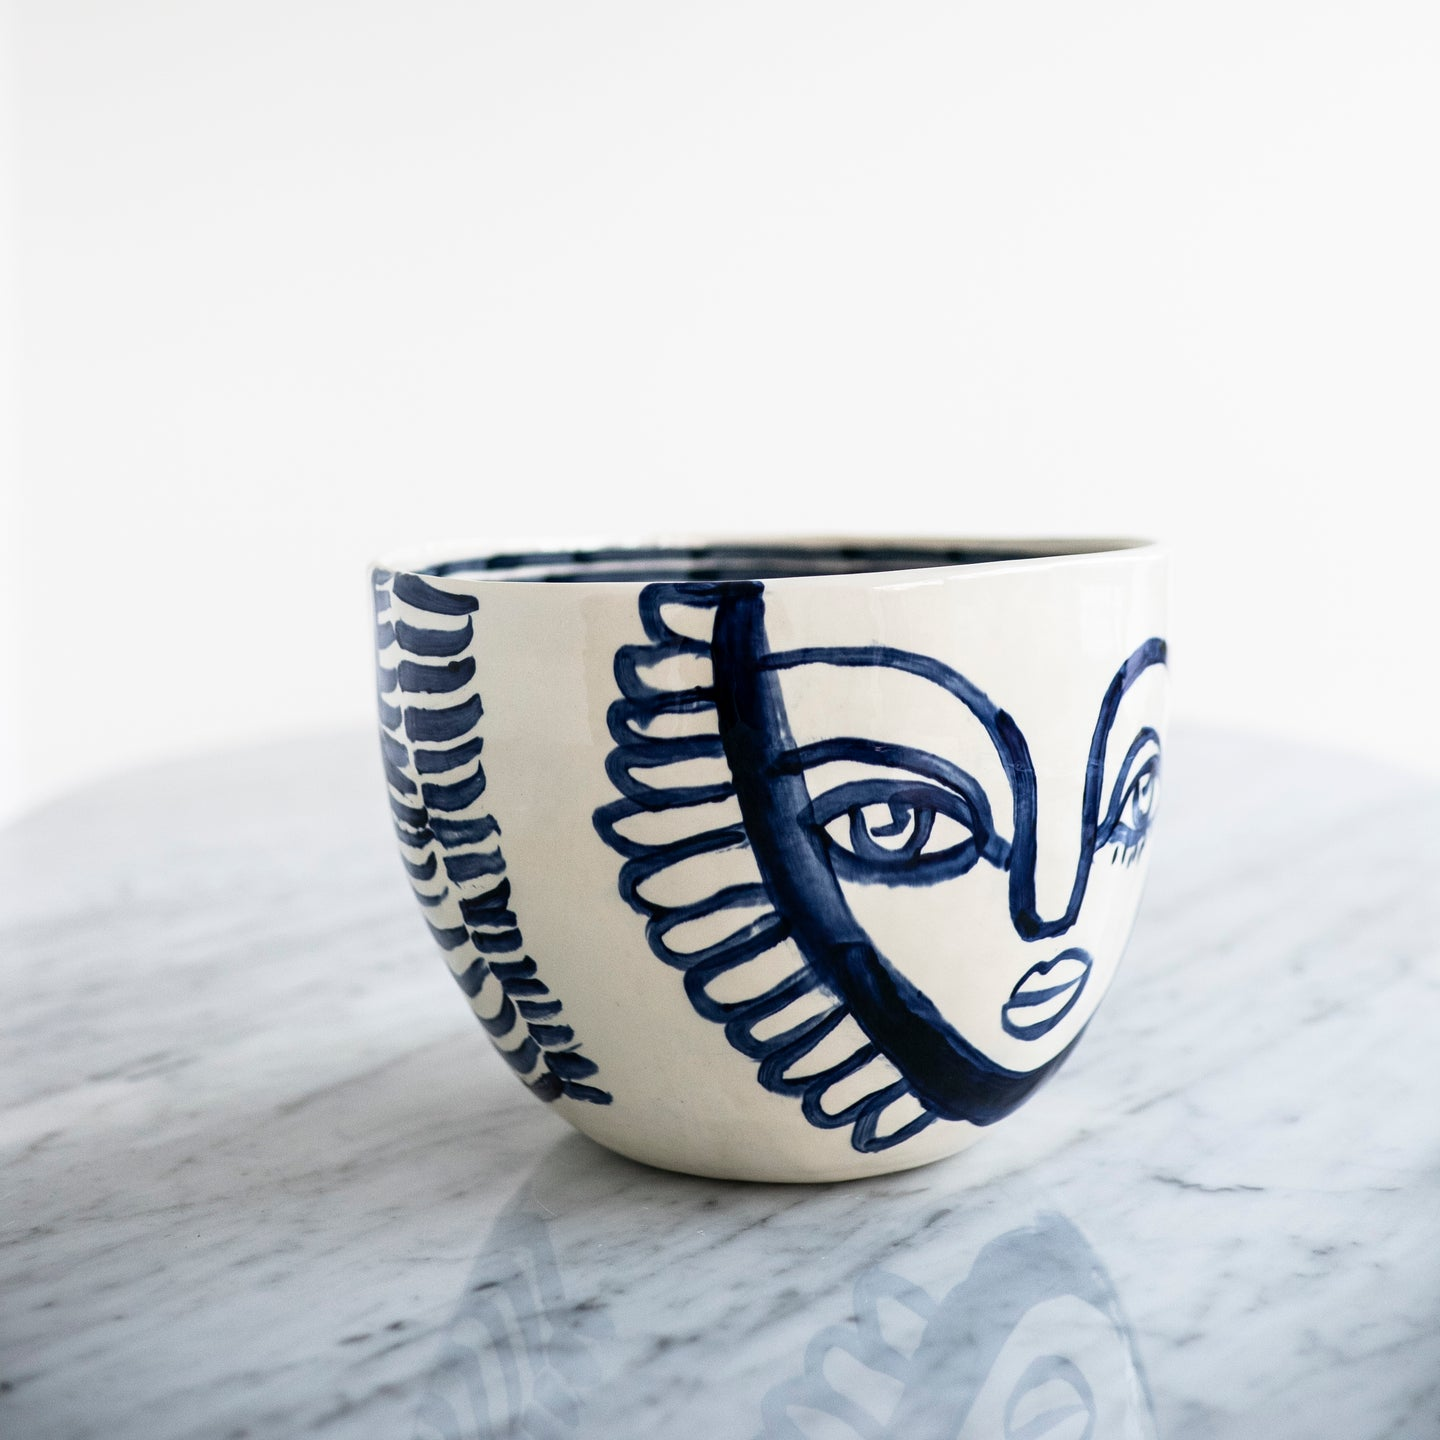 The Bowl Journal - Ceramic Bowl #61